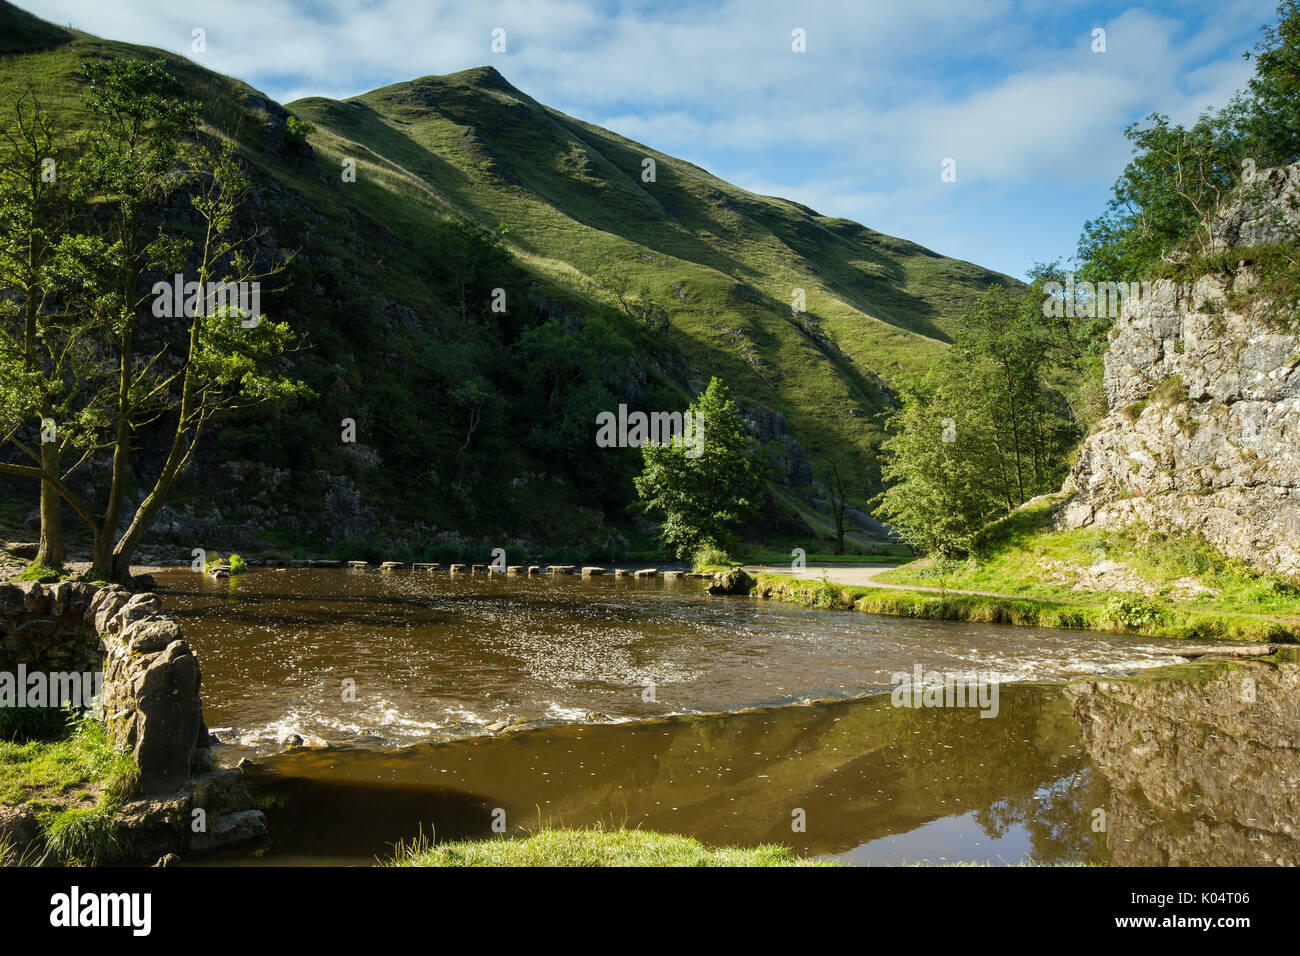 Dovedale Stepping stones with Thorpe Clound in background - Stock Image